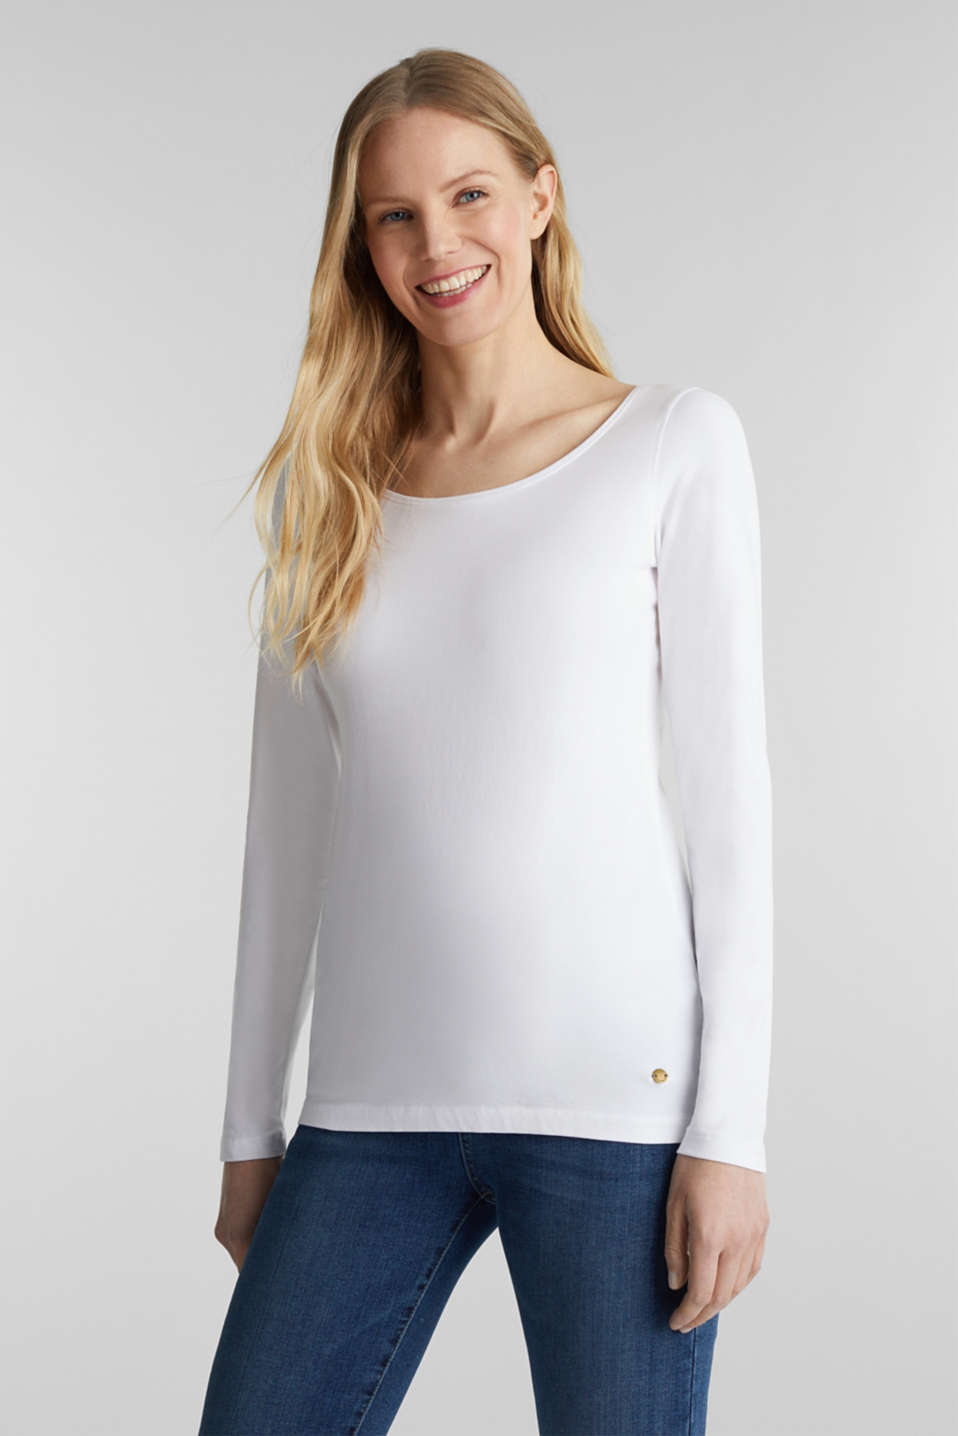 Esprit - Stretch long sleeve top containing organic cotton